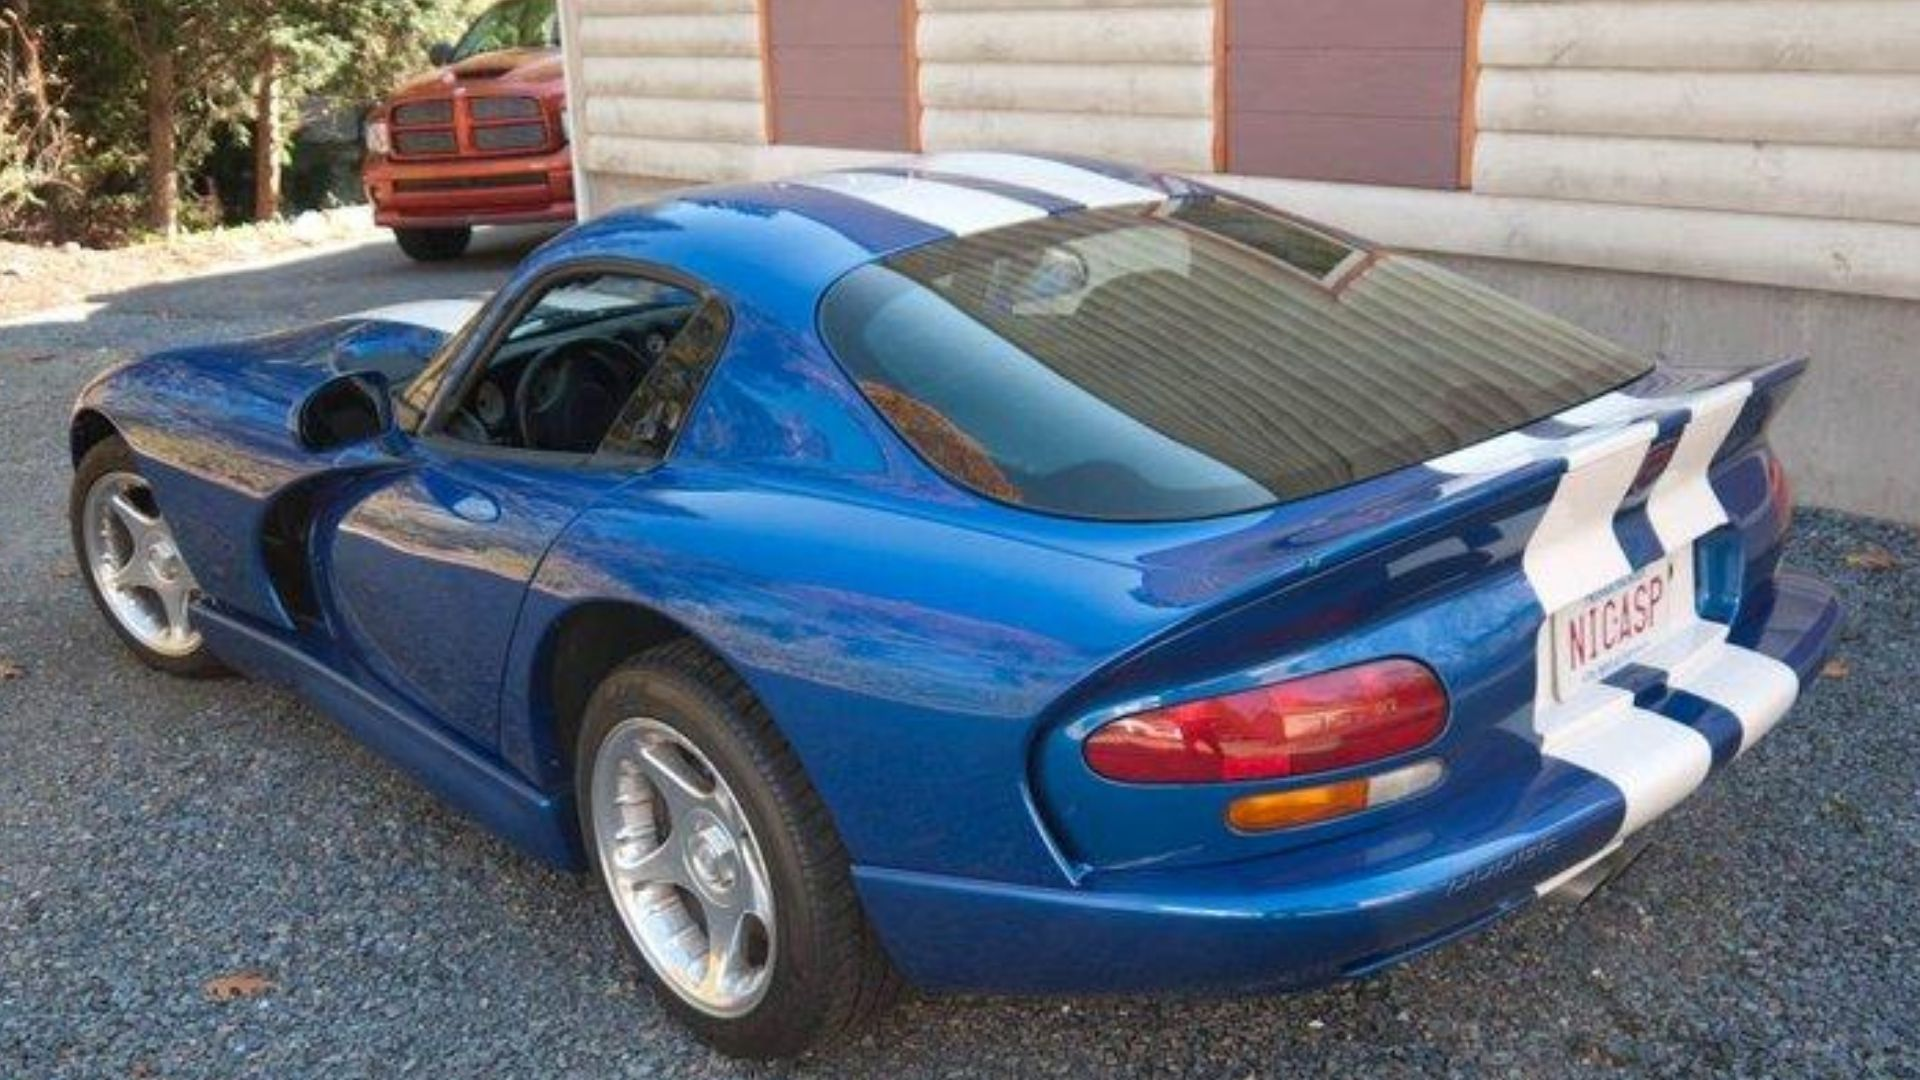 Low-Mileage 1996 Dodge Viper GTS Seeks Fun